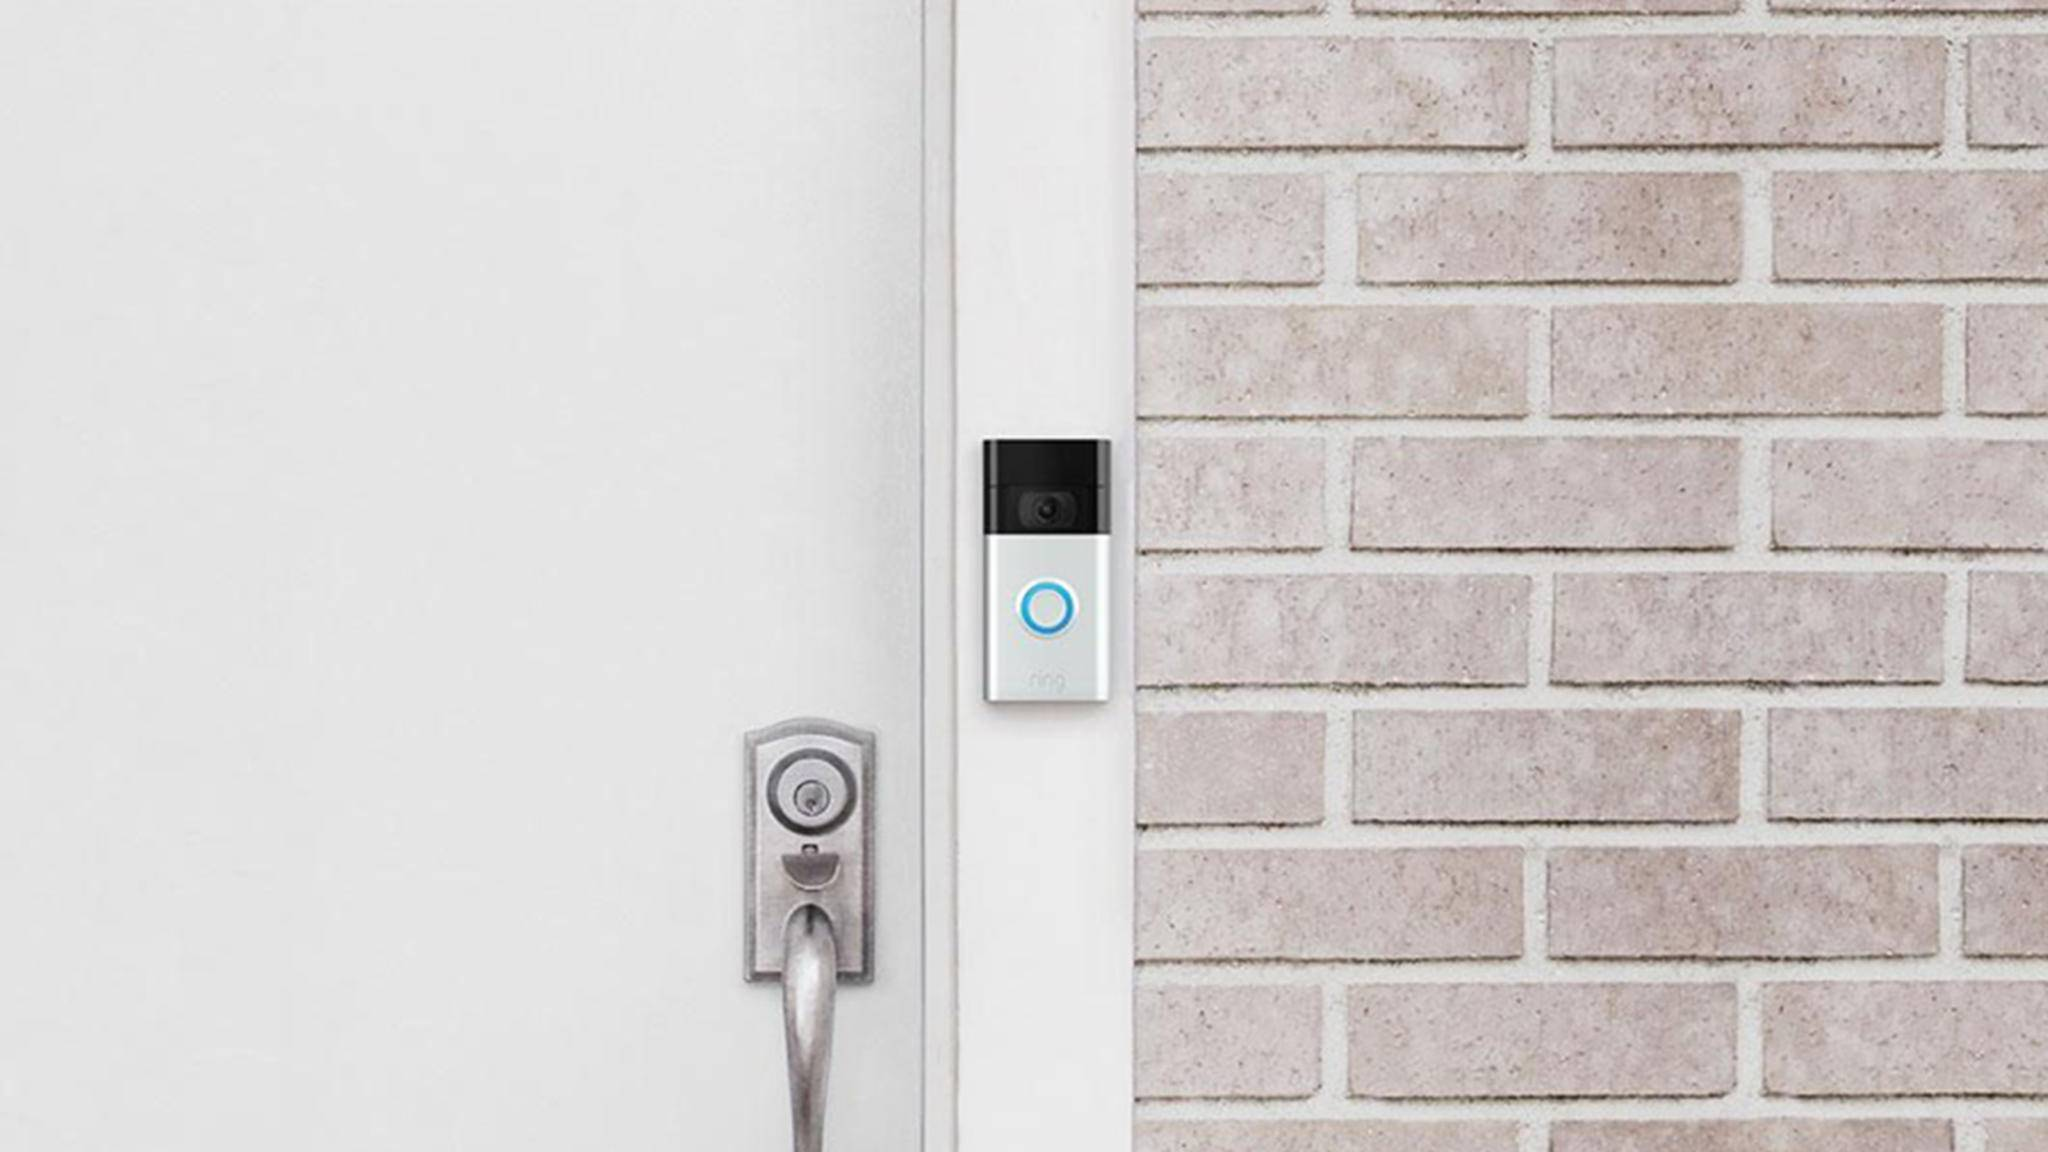 Rind Video Doorbell